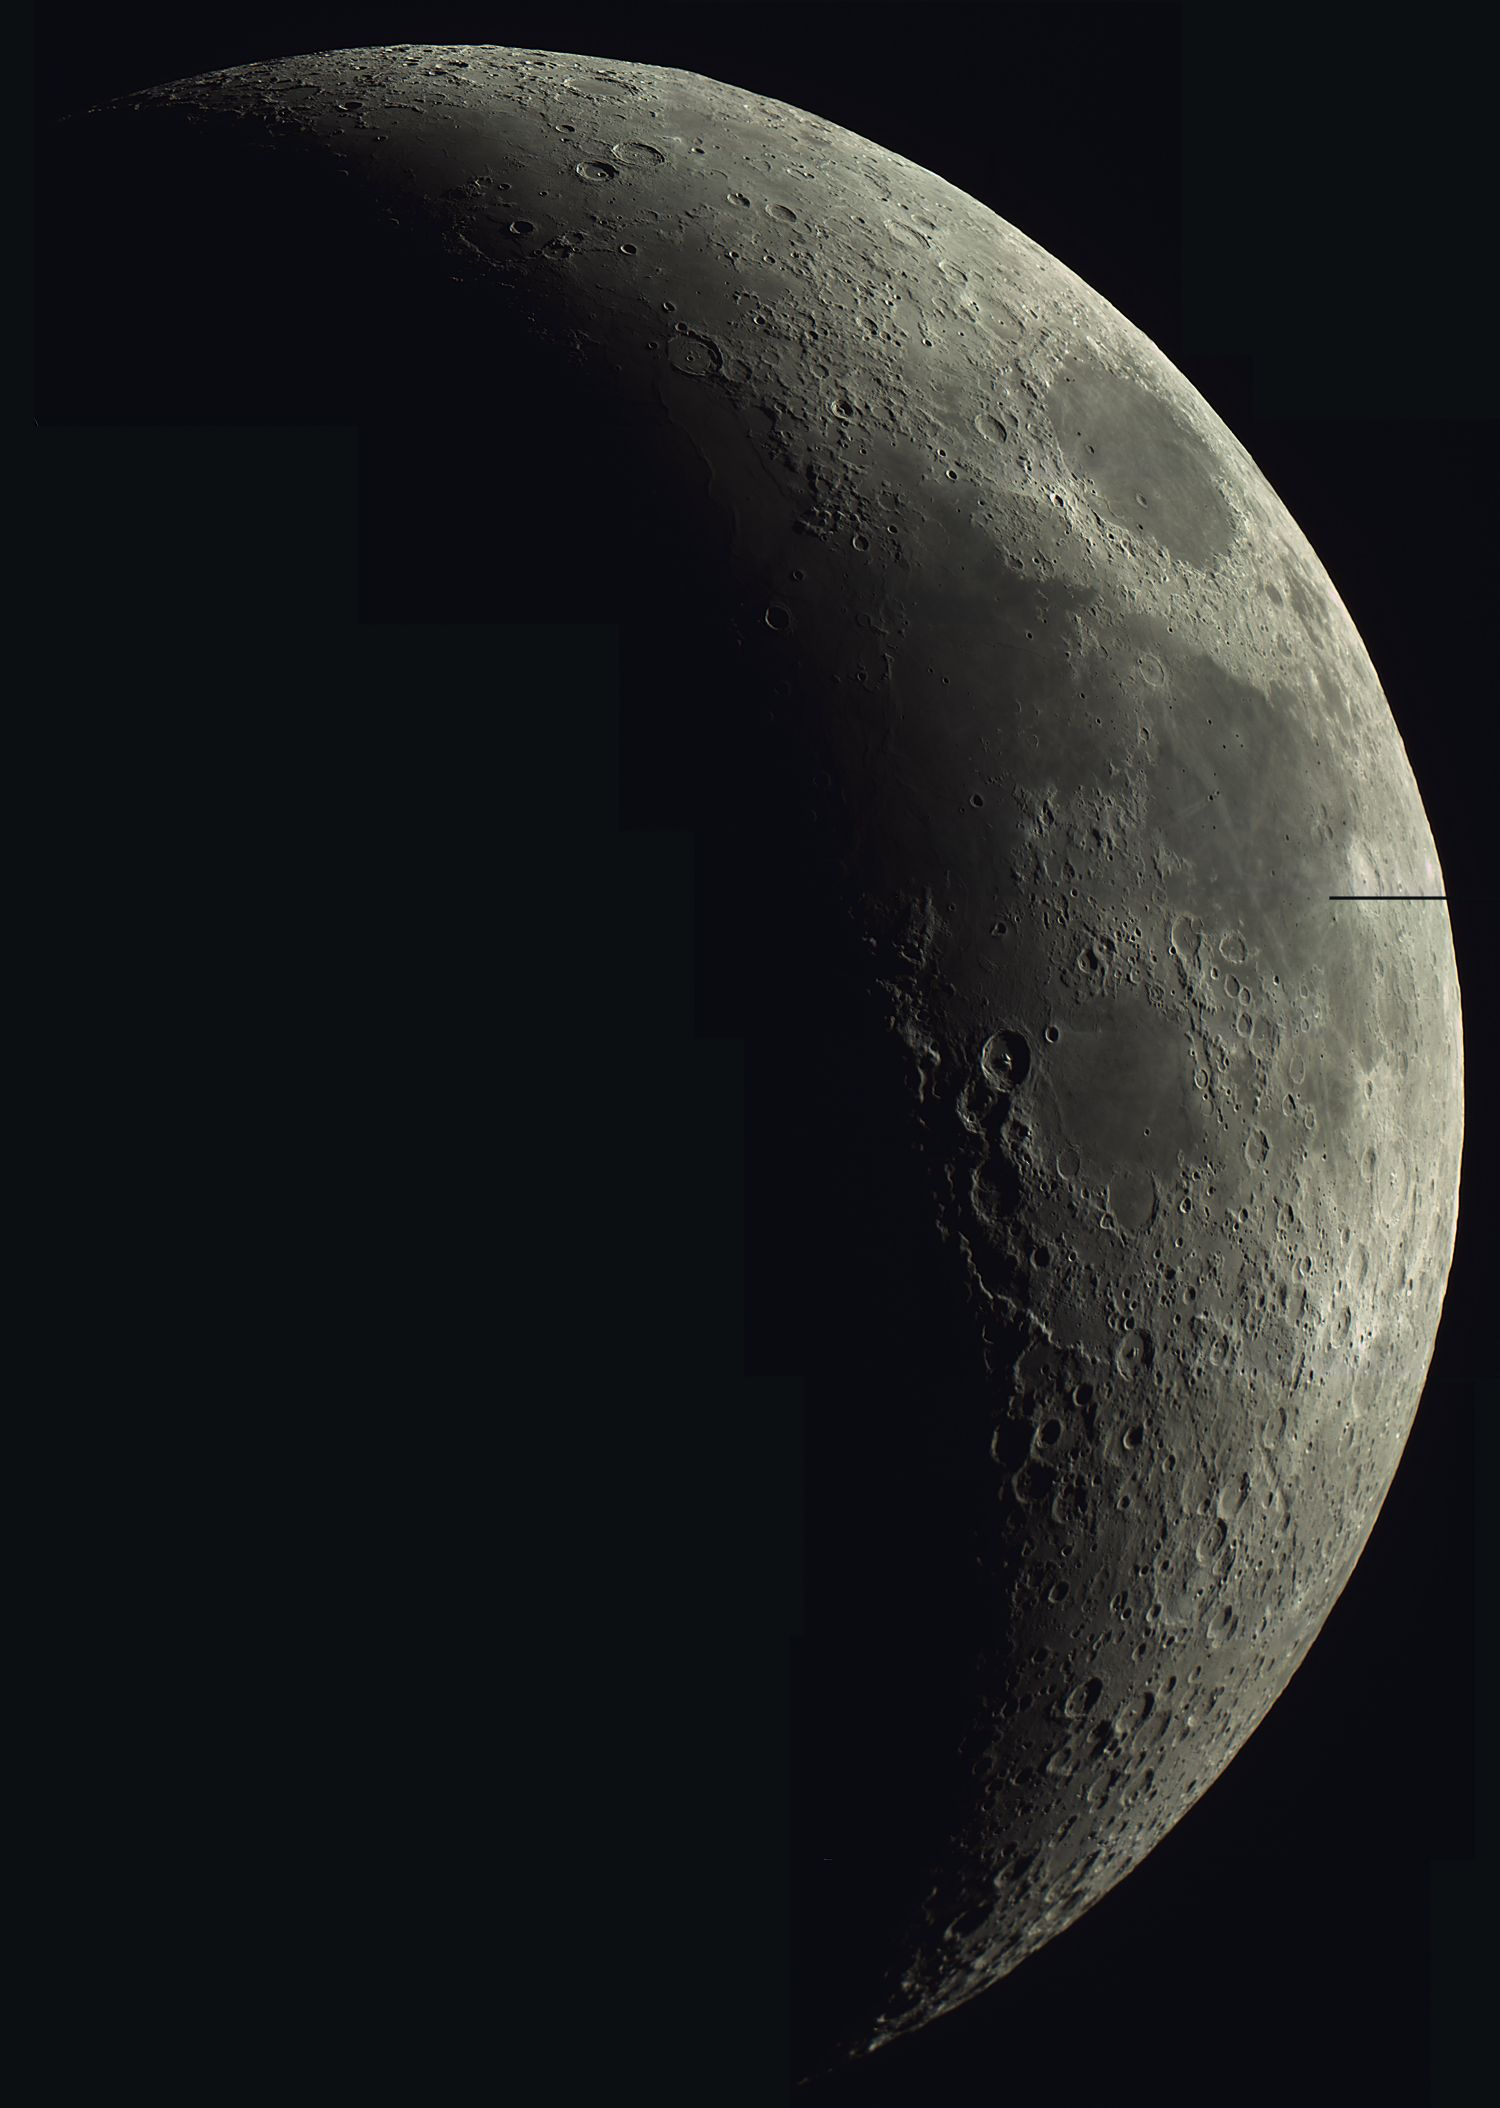 CCD Image Mosaic of the Moon